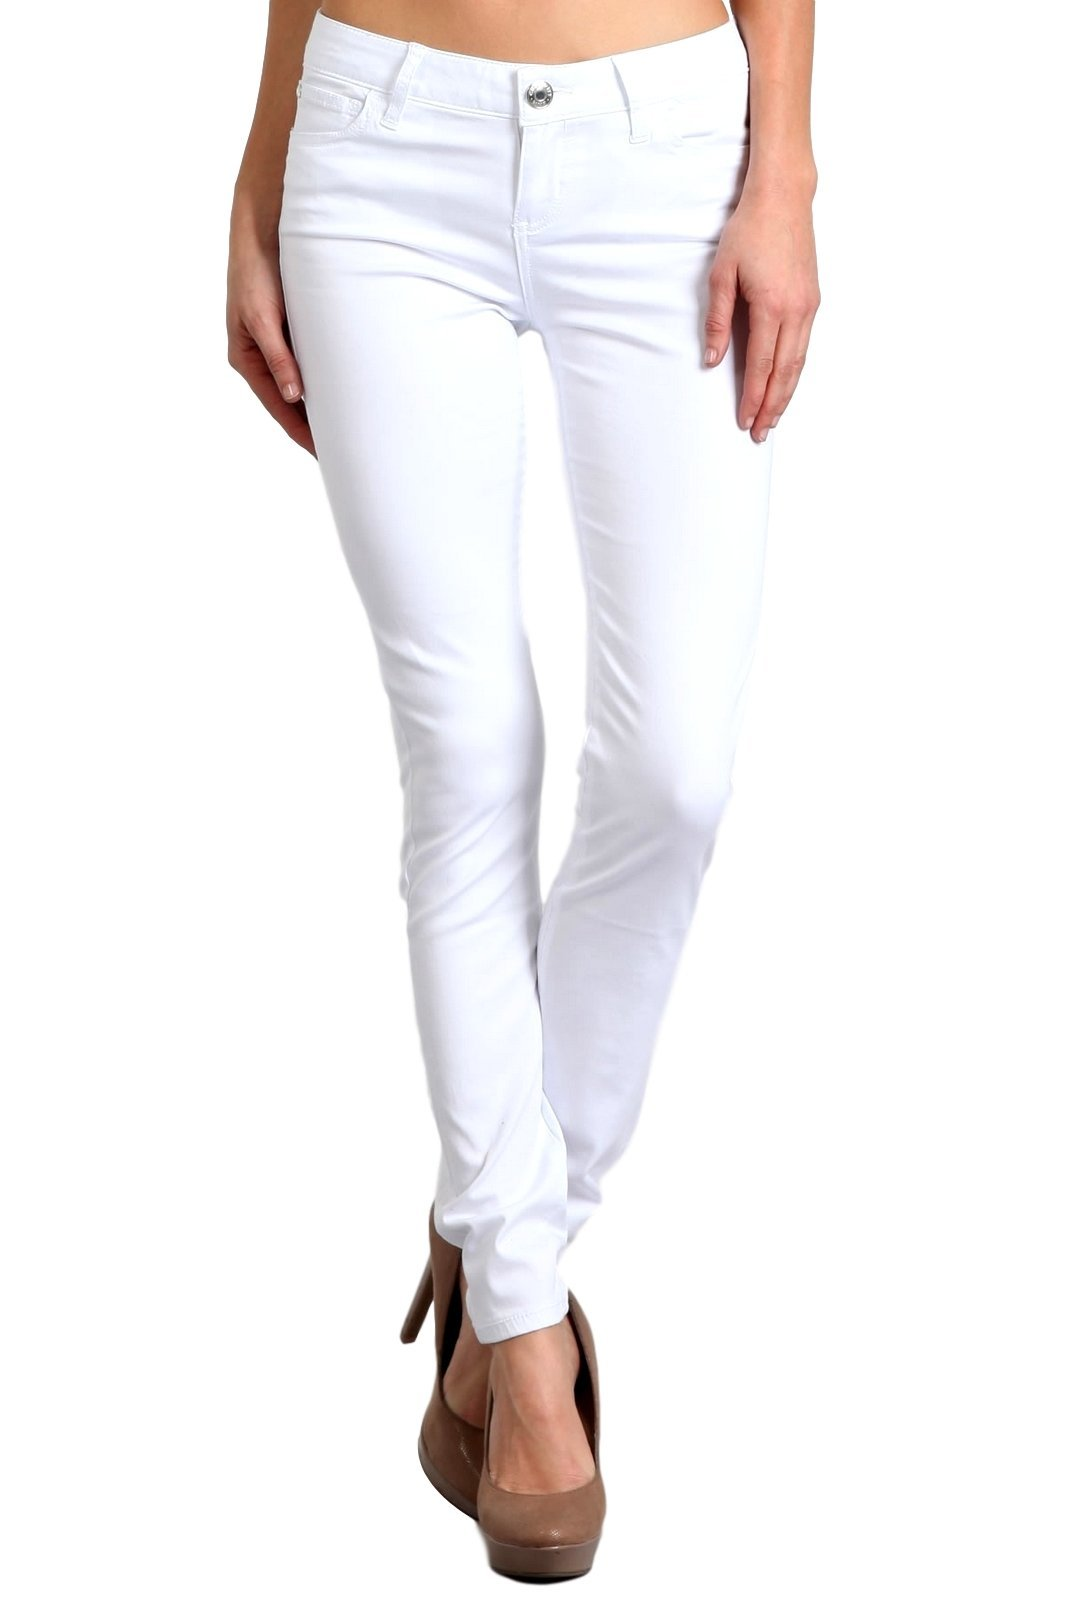 Celebrity Pink Women's Mid Rise Colored Skinny Pants CJ21038Z35 (White, 9/29)